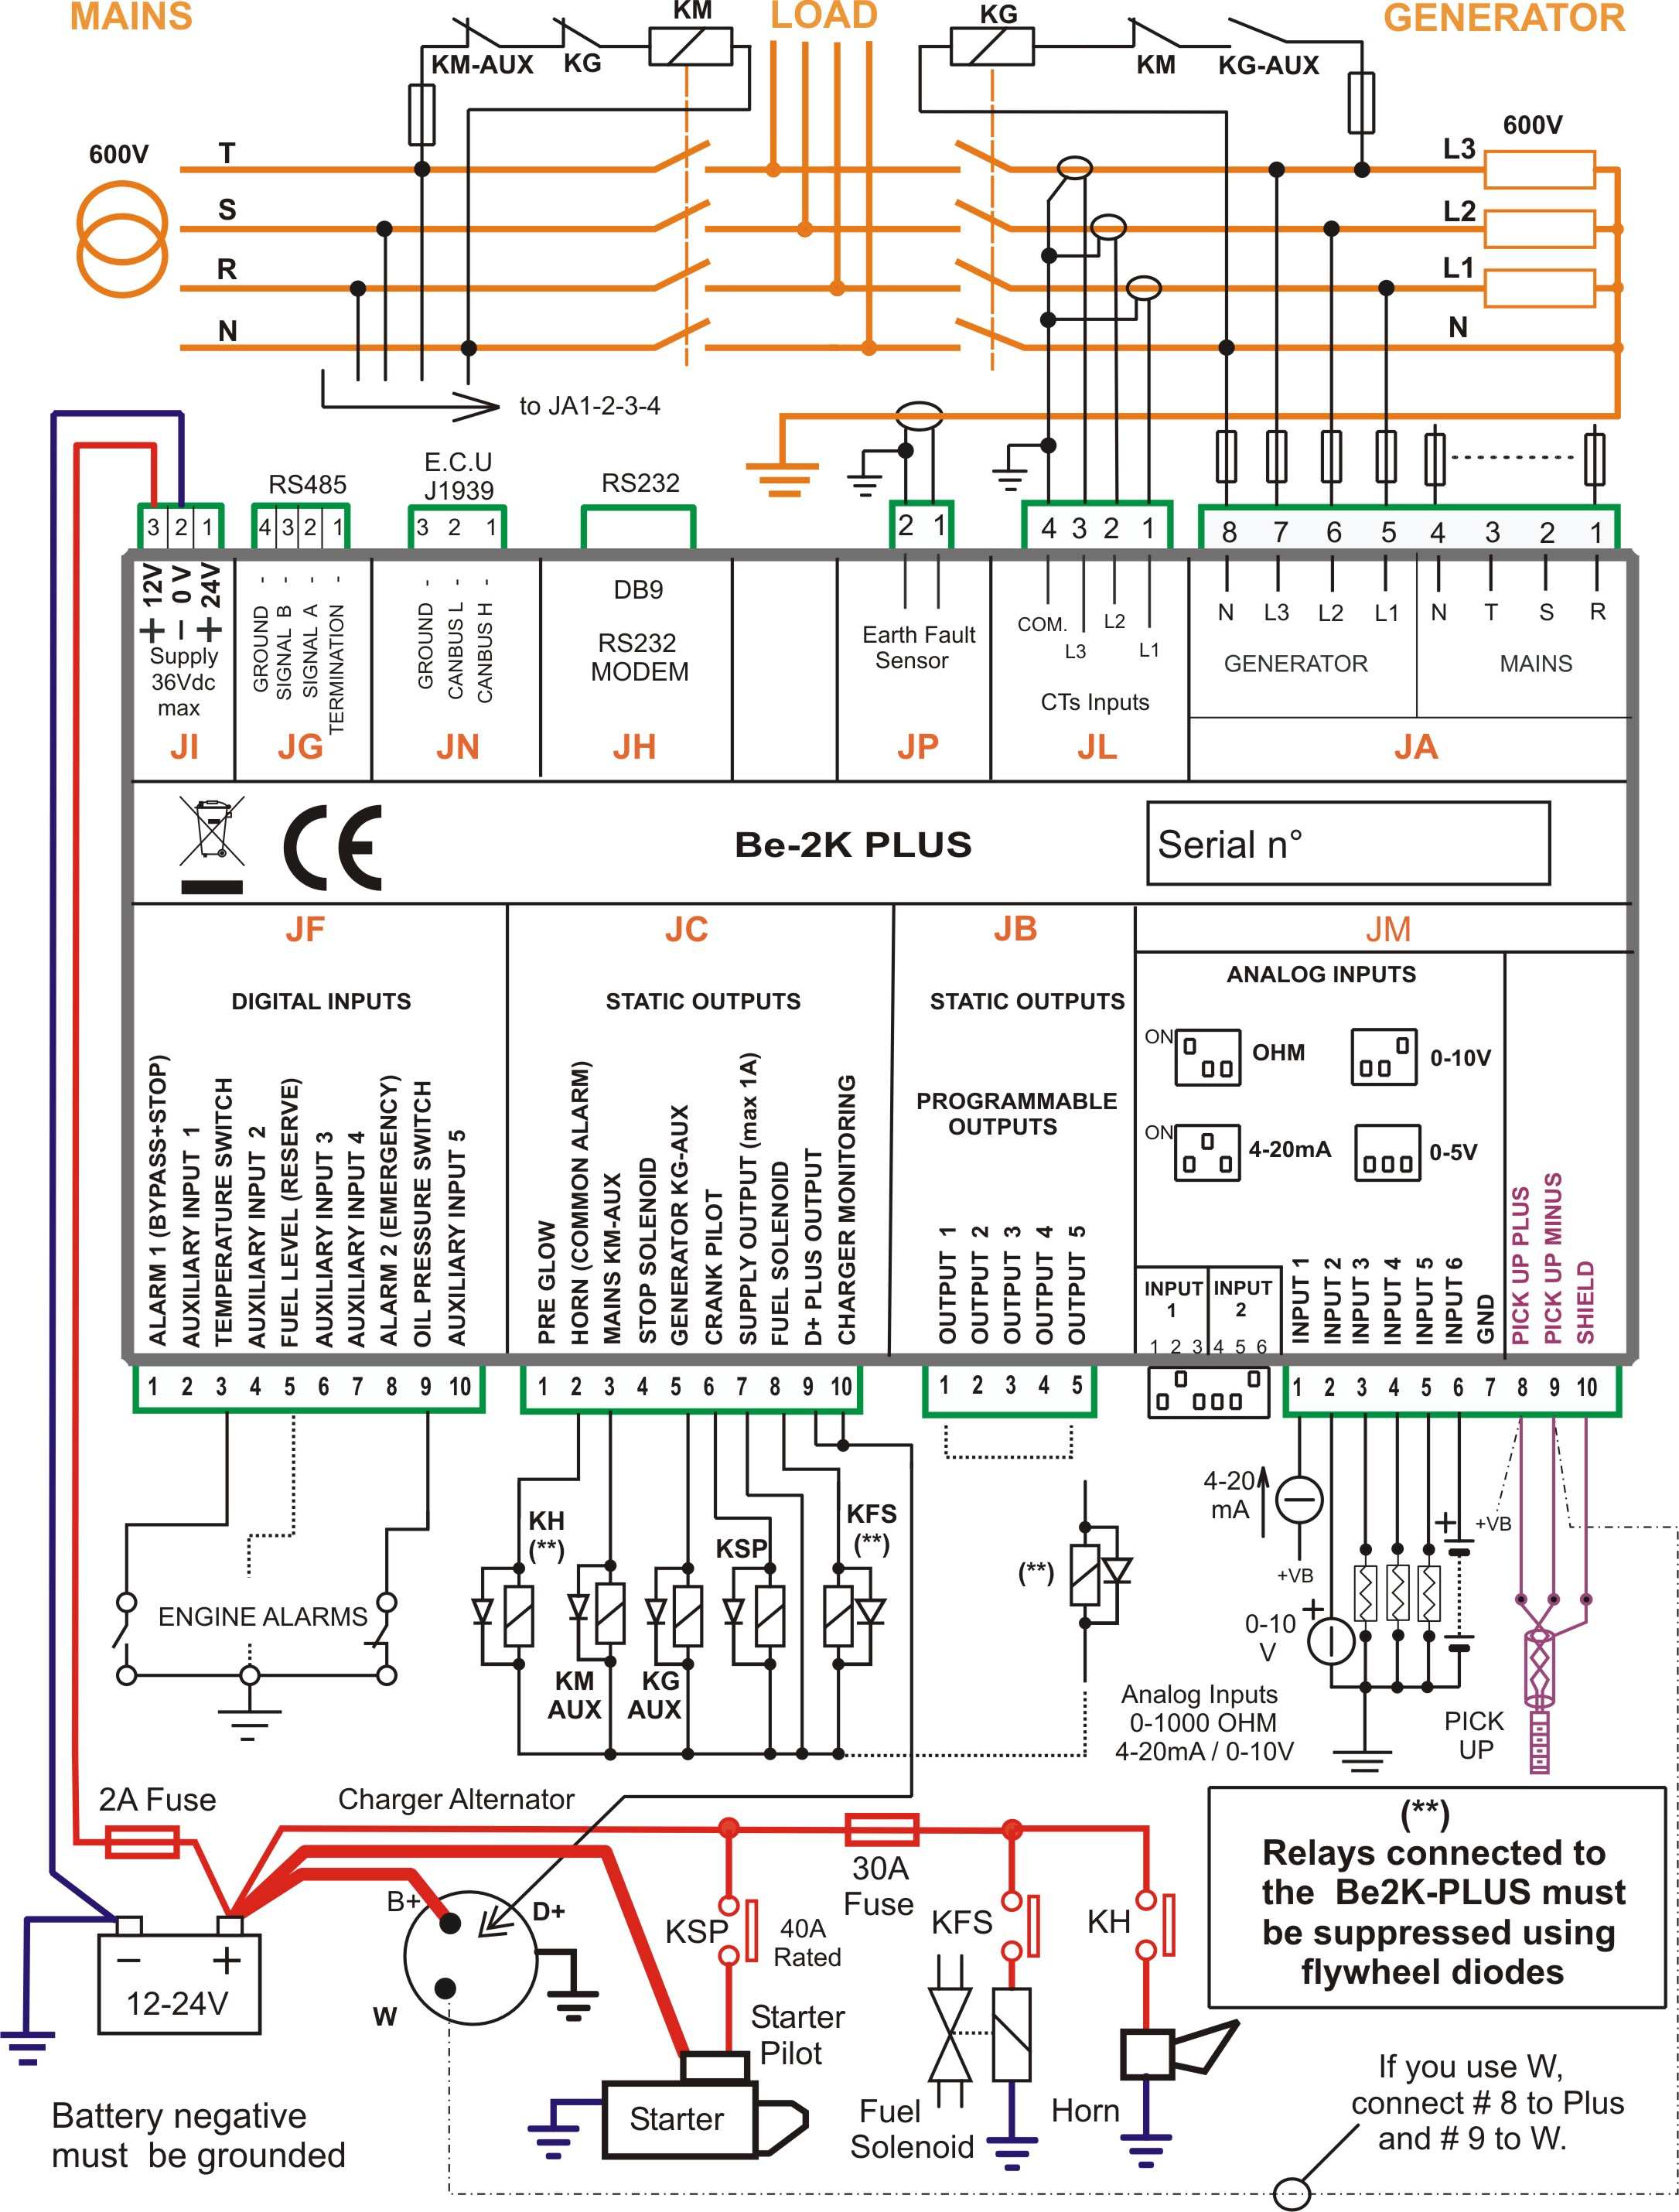 fire pump control panel wiring diagram romanesque architecture amf for dg set  genset controller